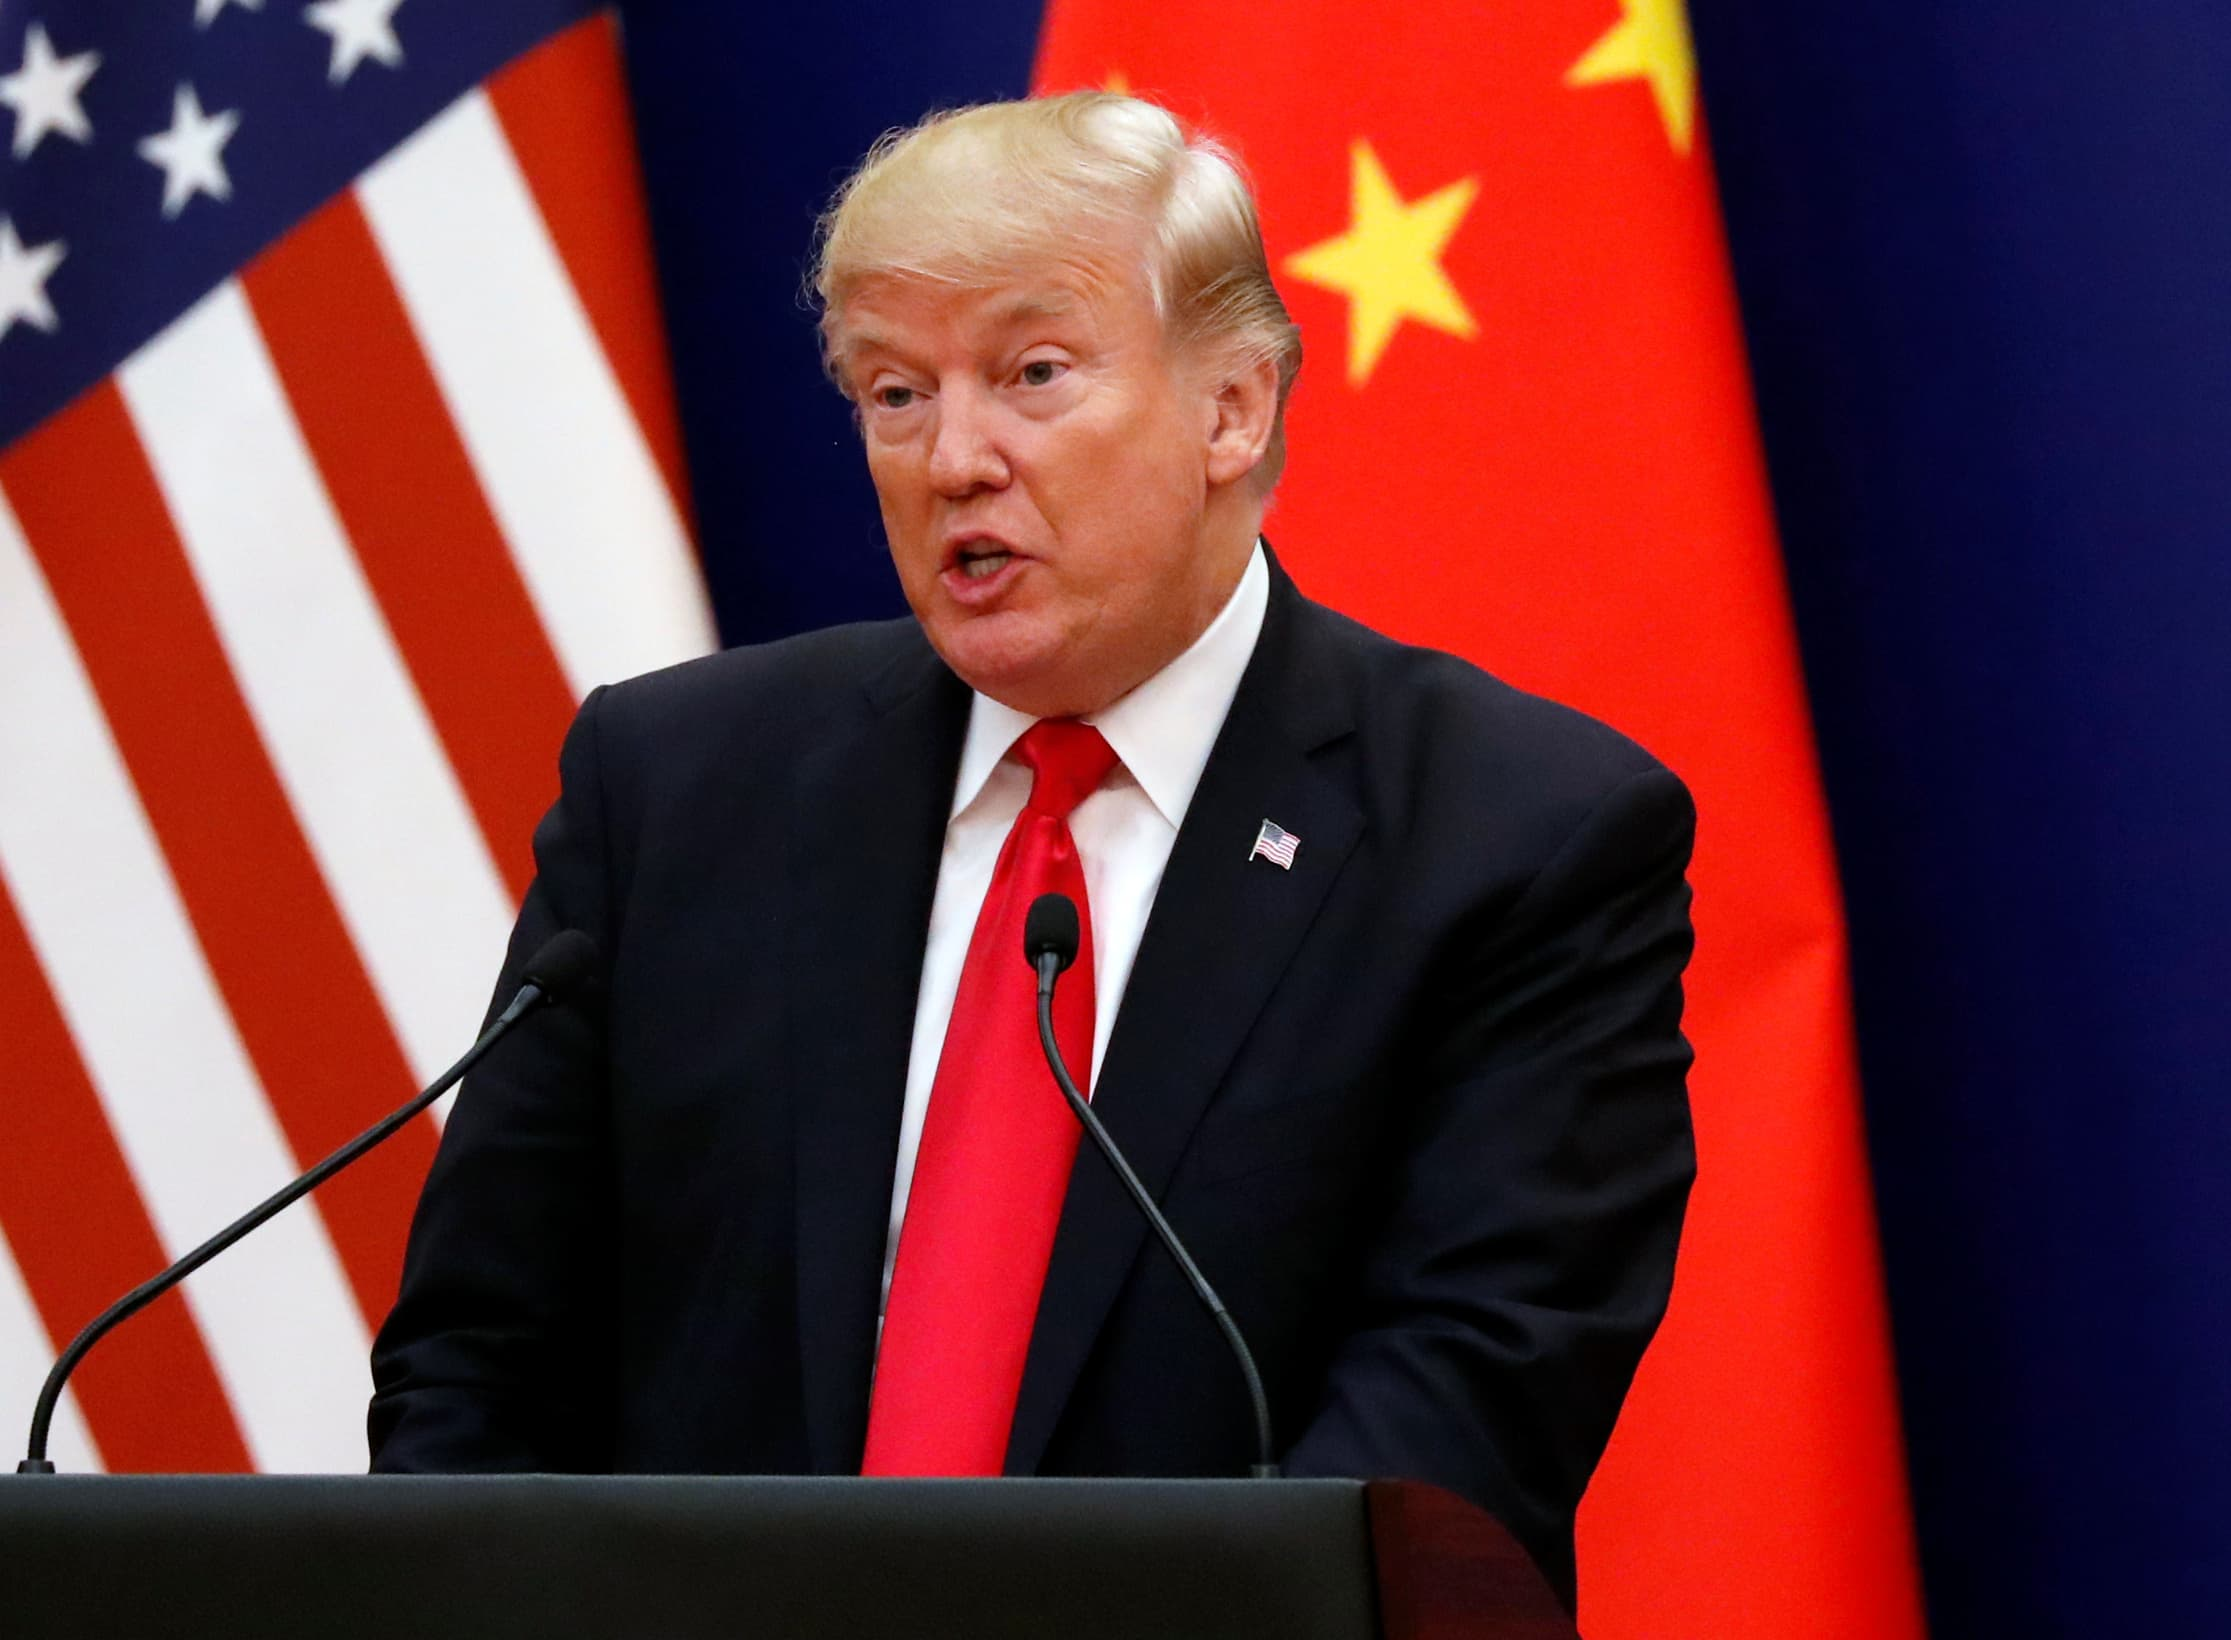 Ron Insana: The market doesn't realize this is more than a trade war — it's a new Cold War